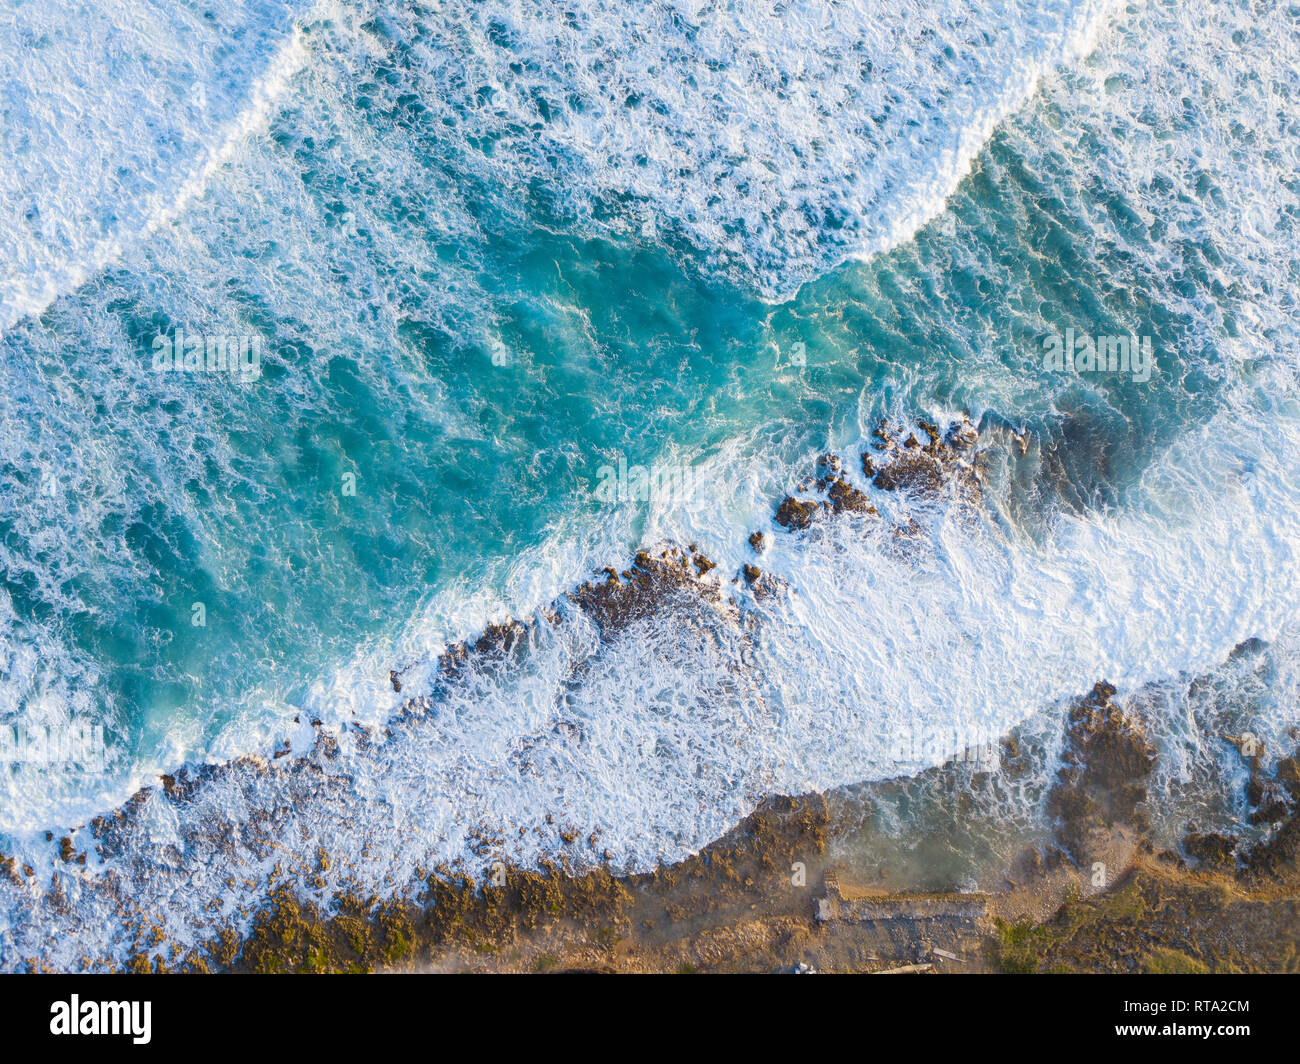 Aerial Drone shot showing the ocean and wave breaks on the rocky coastline from above. - Stock Image